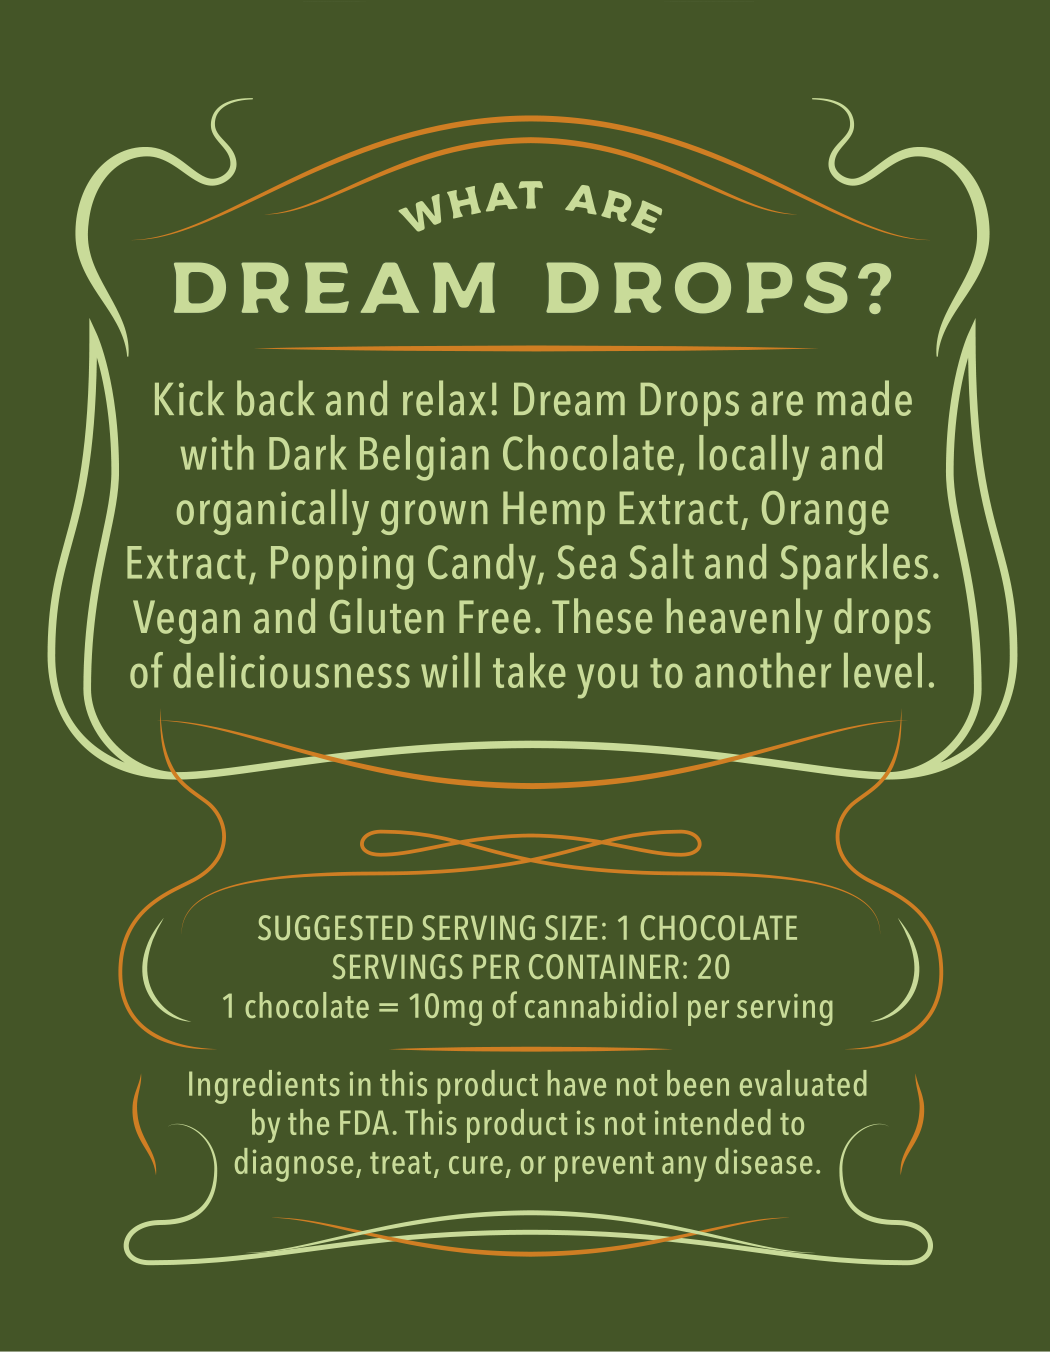 What Are Dream Drops?